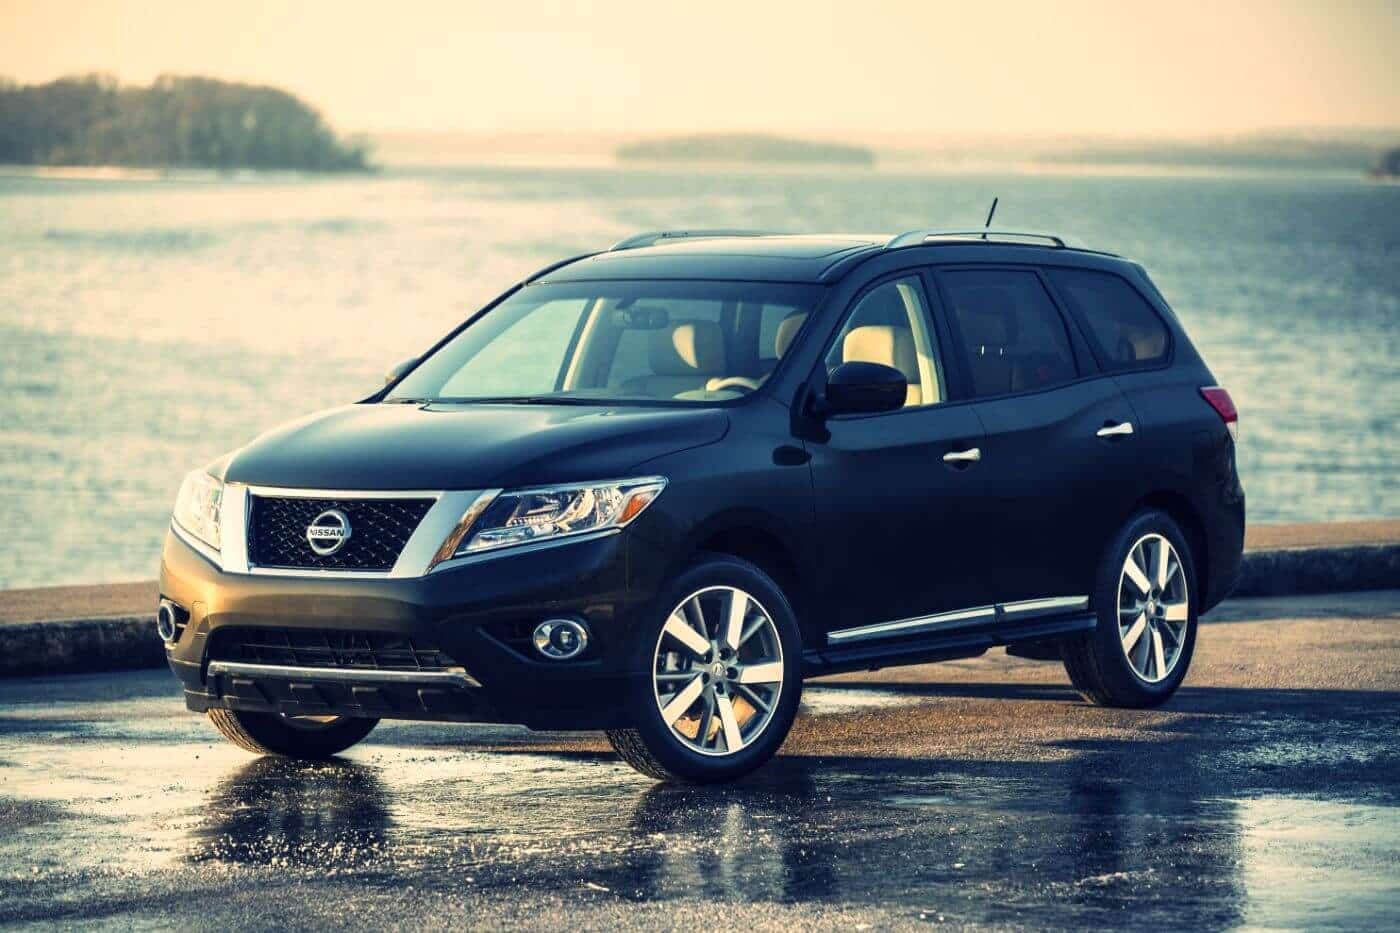 2019 Nissan Pathfinder Reviews, Price & Release Date